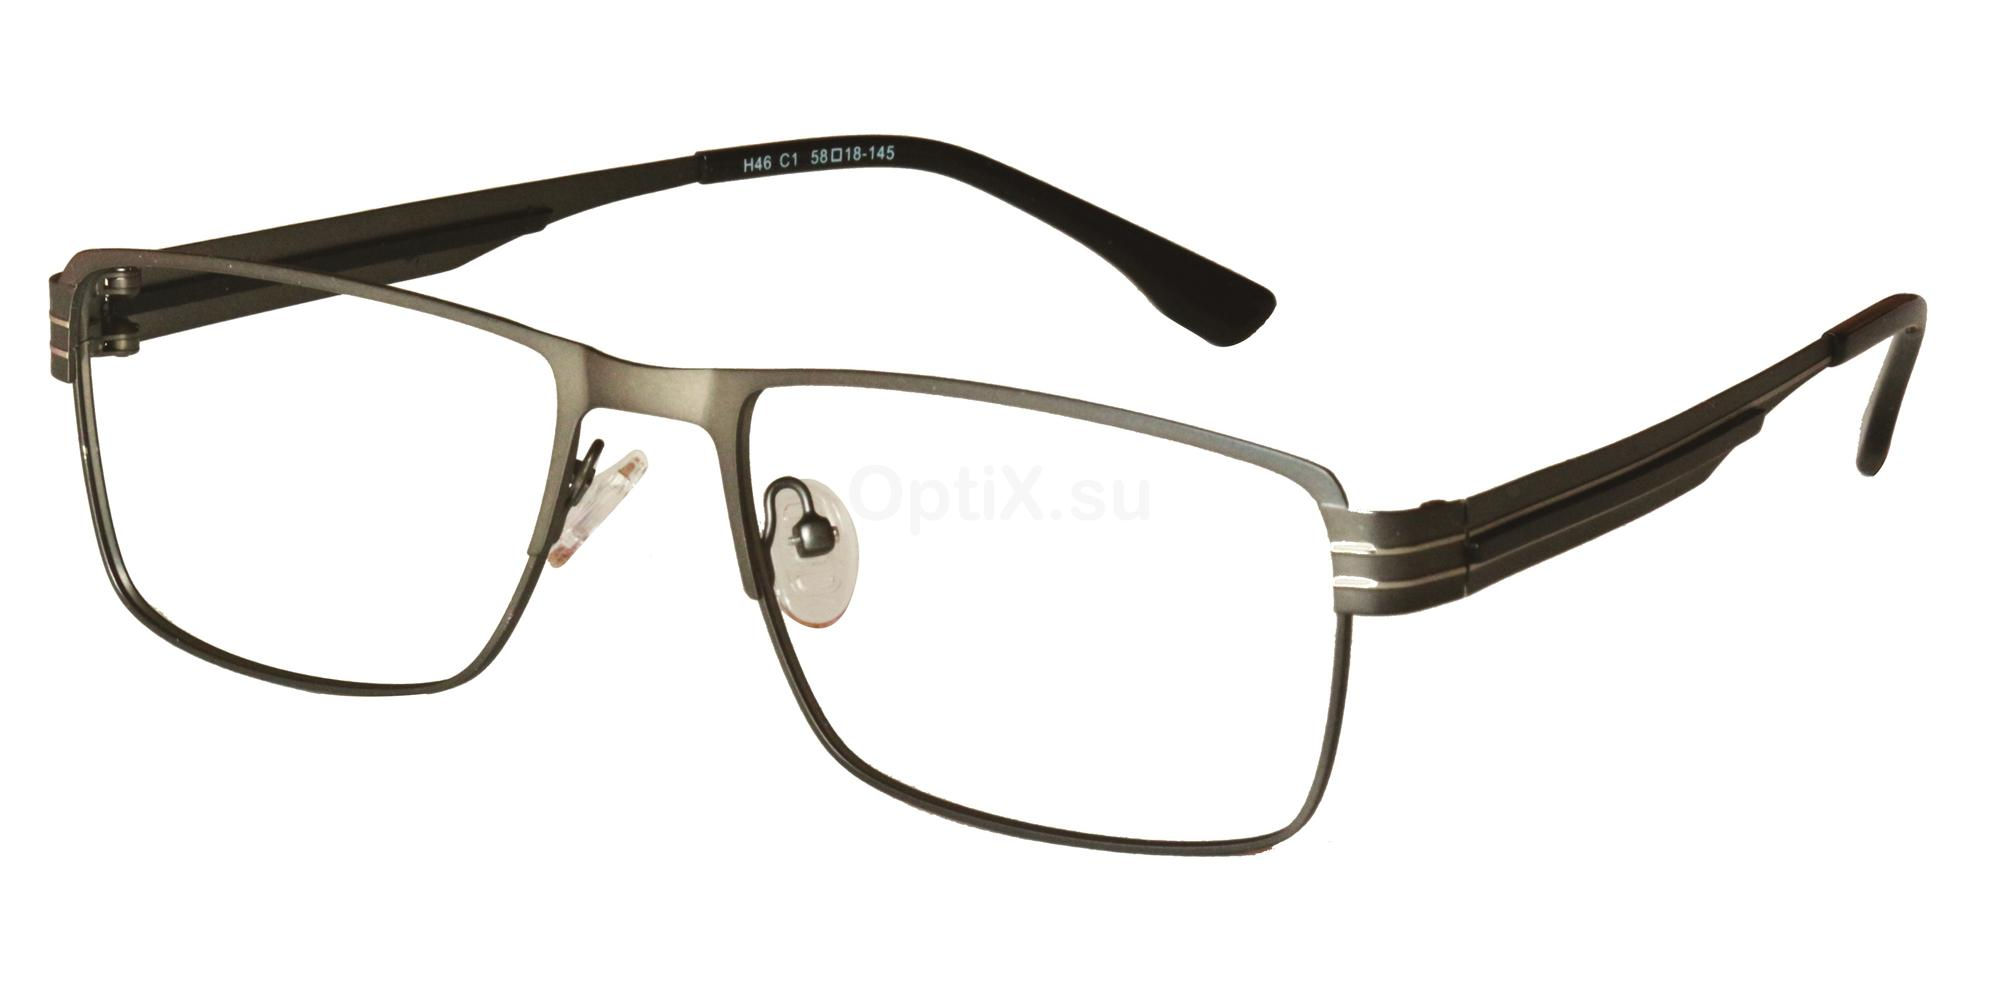 C1 H46 Glasses, Halstrom